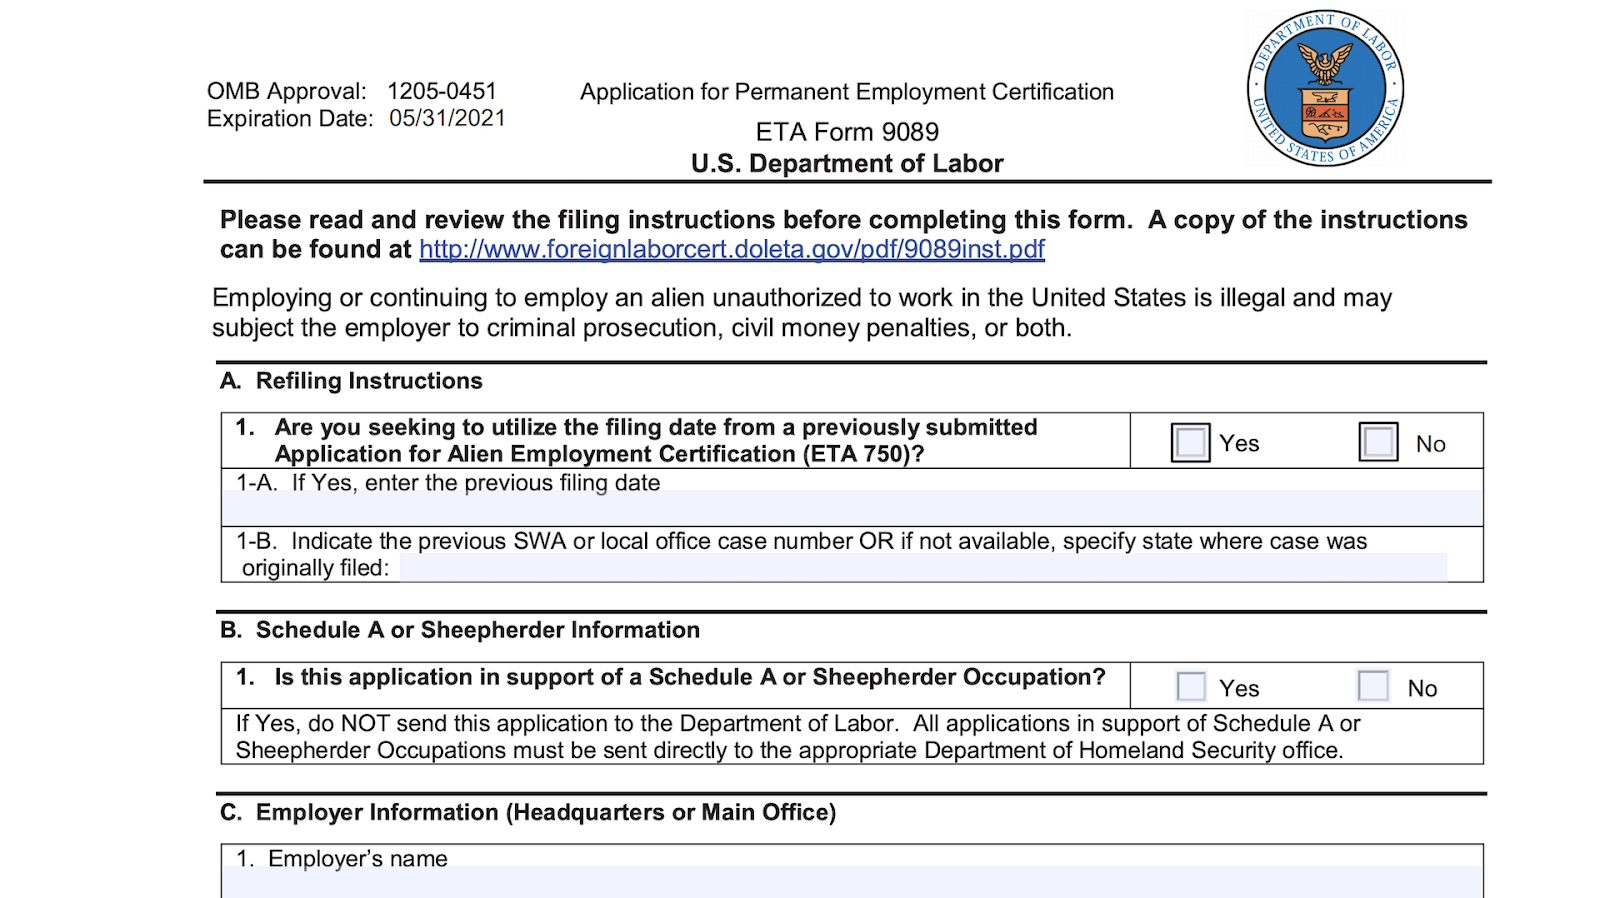 Screenshot of the form 9089 as a proof of employees job title, duties and wages